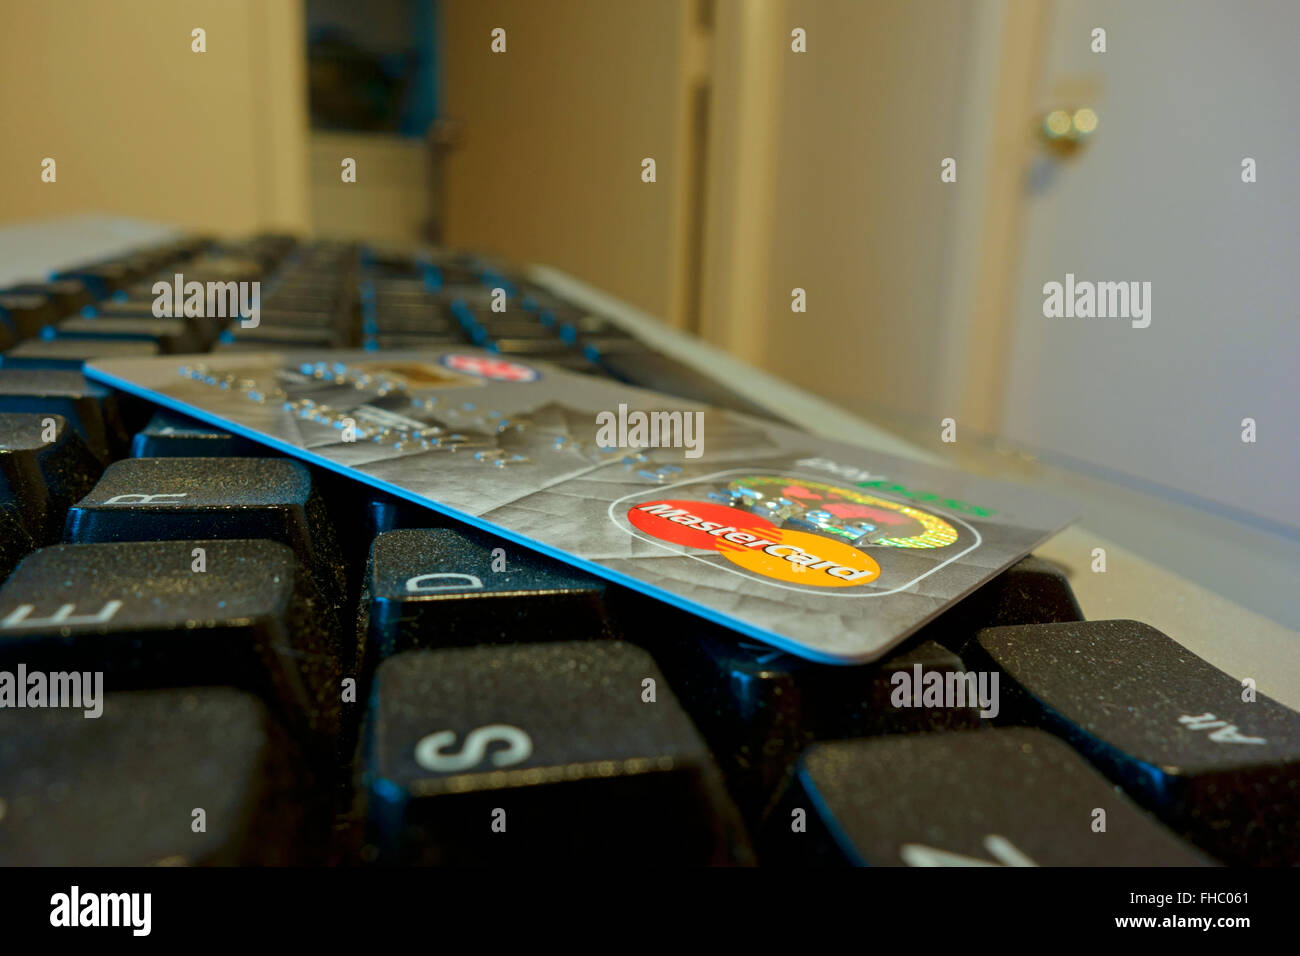 A Mastercard credit card lying on top of a computer keyboard - Stock Image